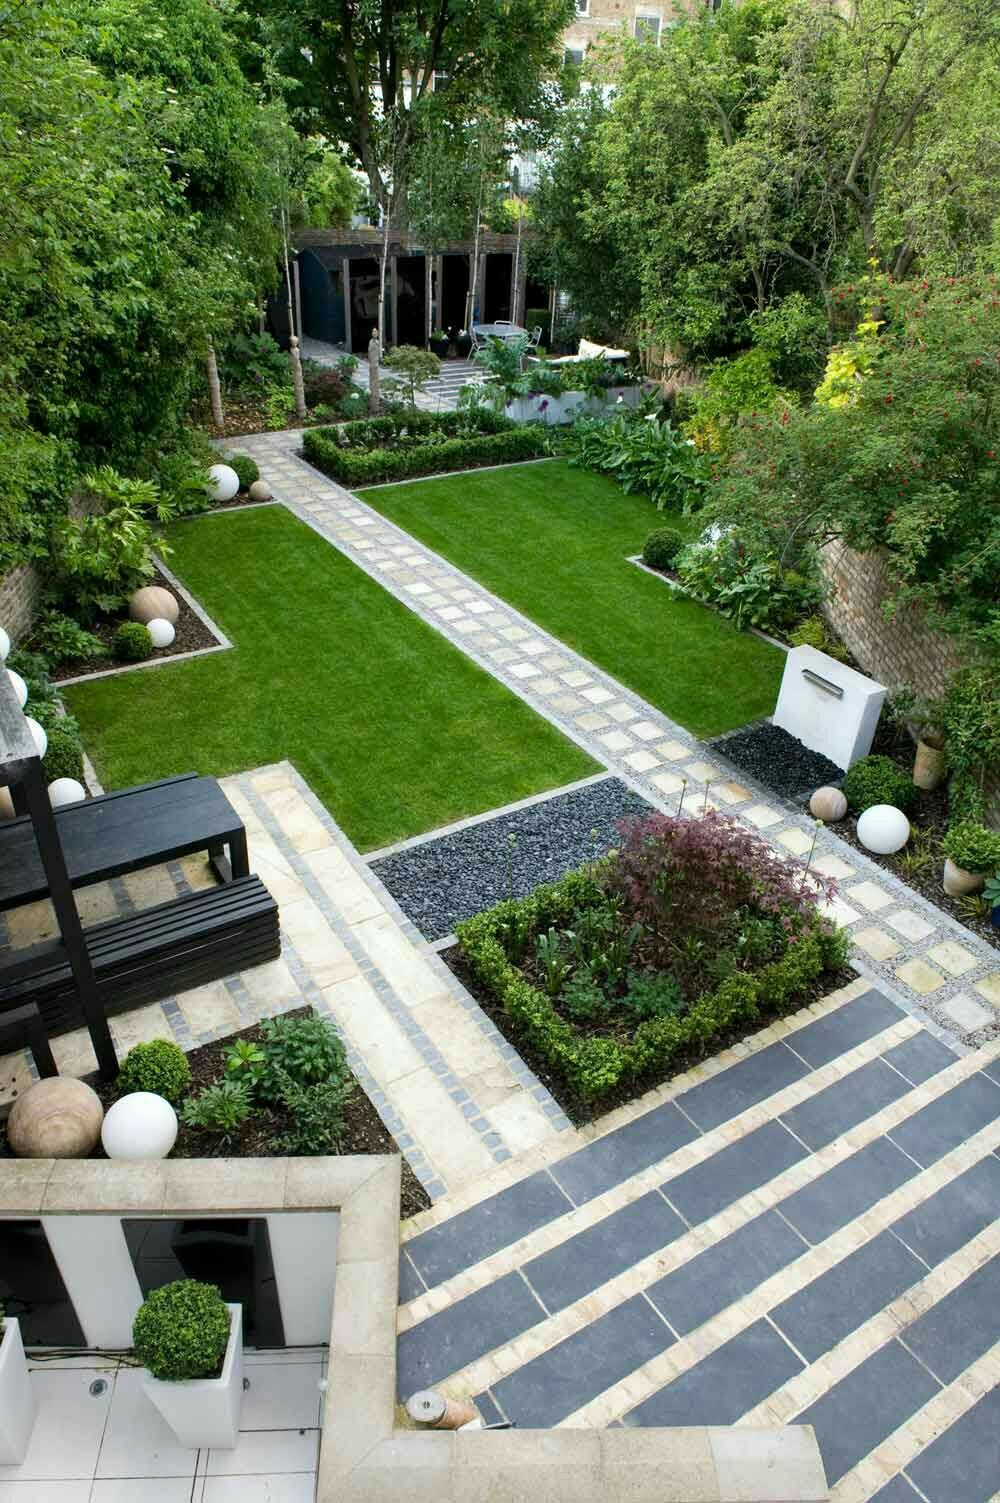 Clean and care garden furniture awesome wanting to create a modern japanese garden design well maintained and maintained garden furniture not only